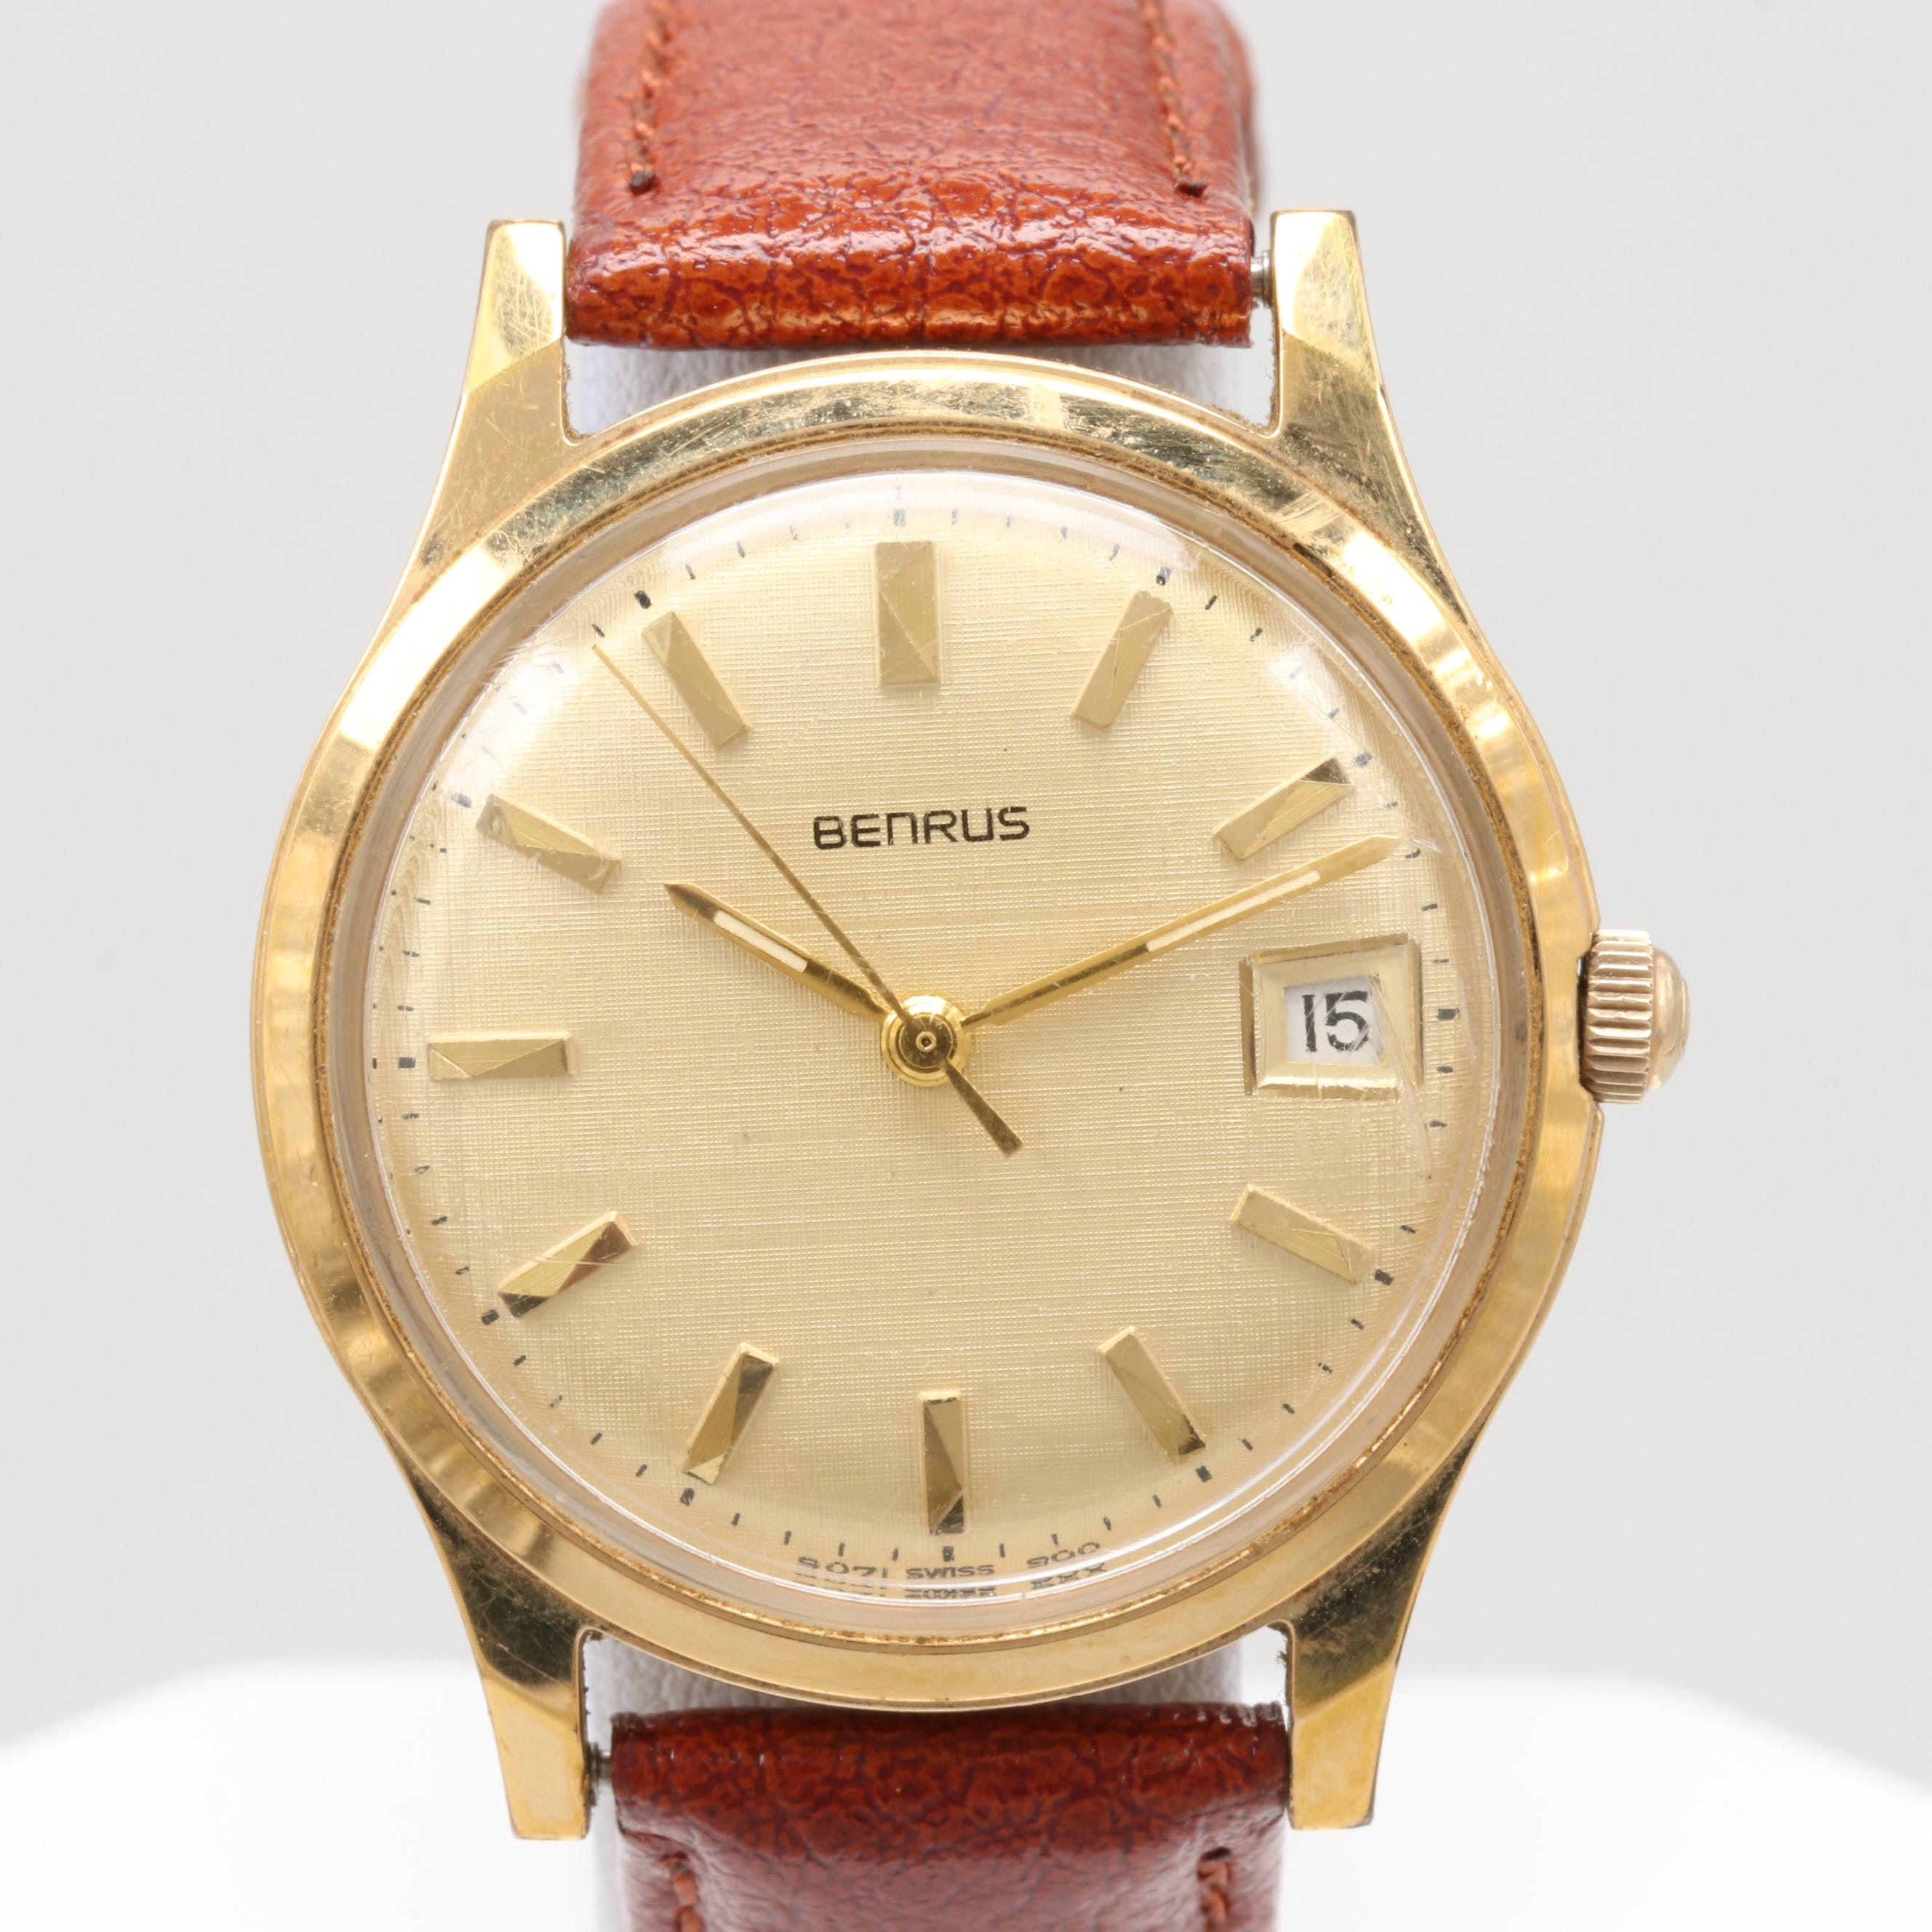 Benrus Gold Tone Wristwatch With Date Window